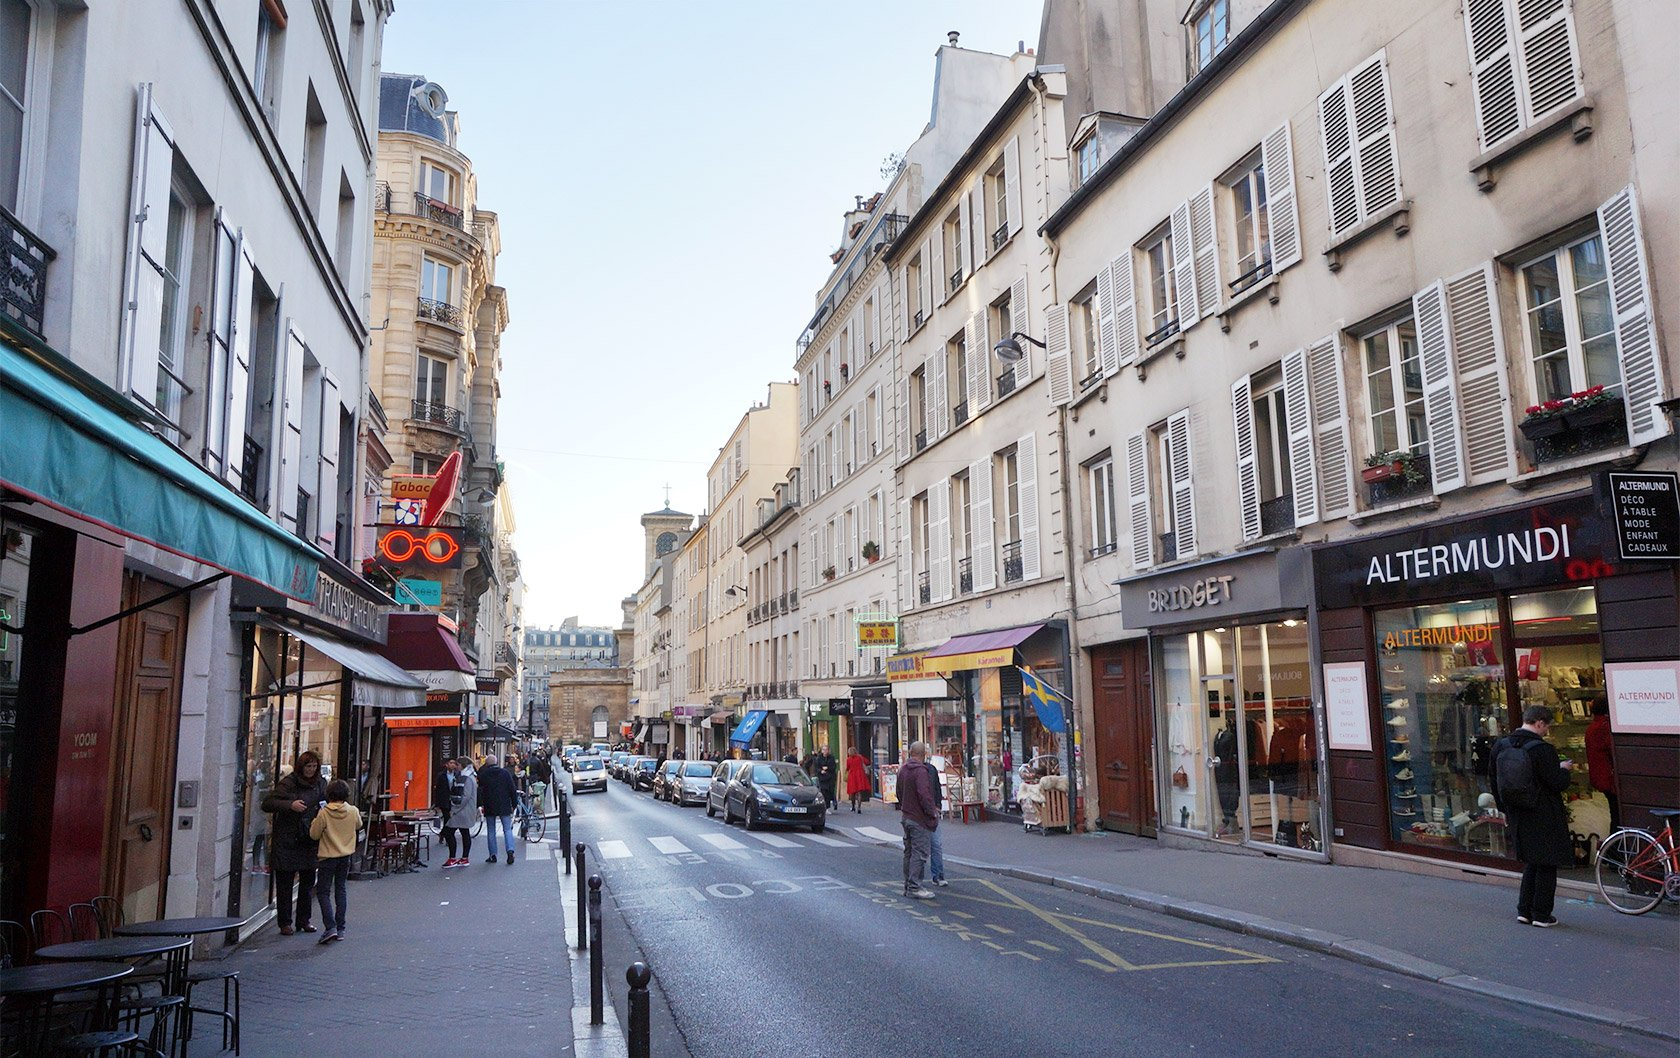 EG-rue-des-martyrs-shopping-paris-1